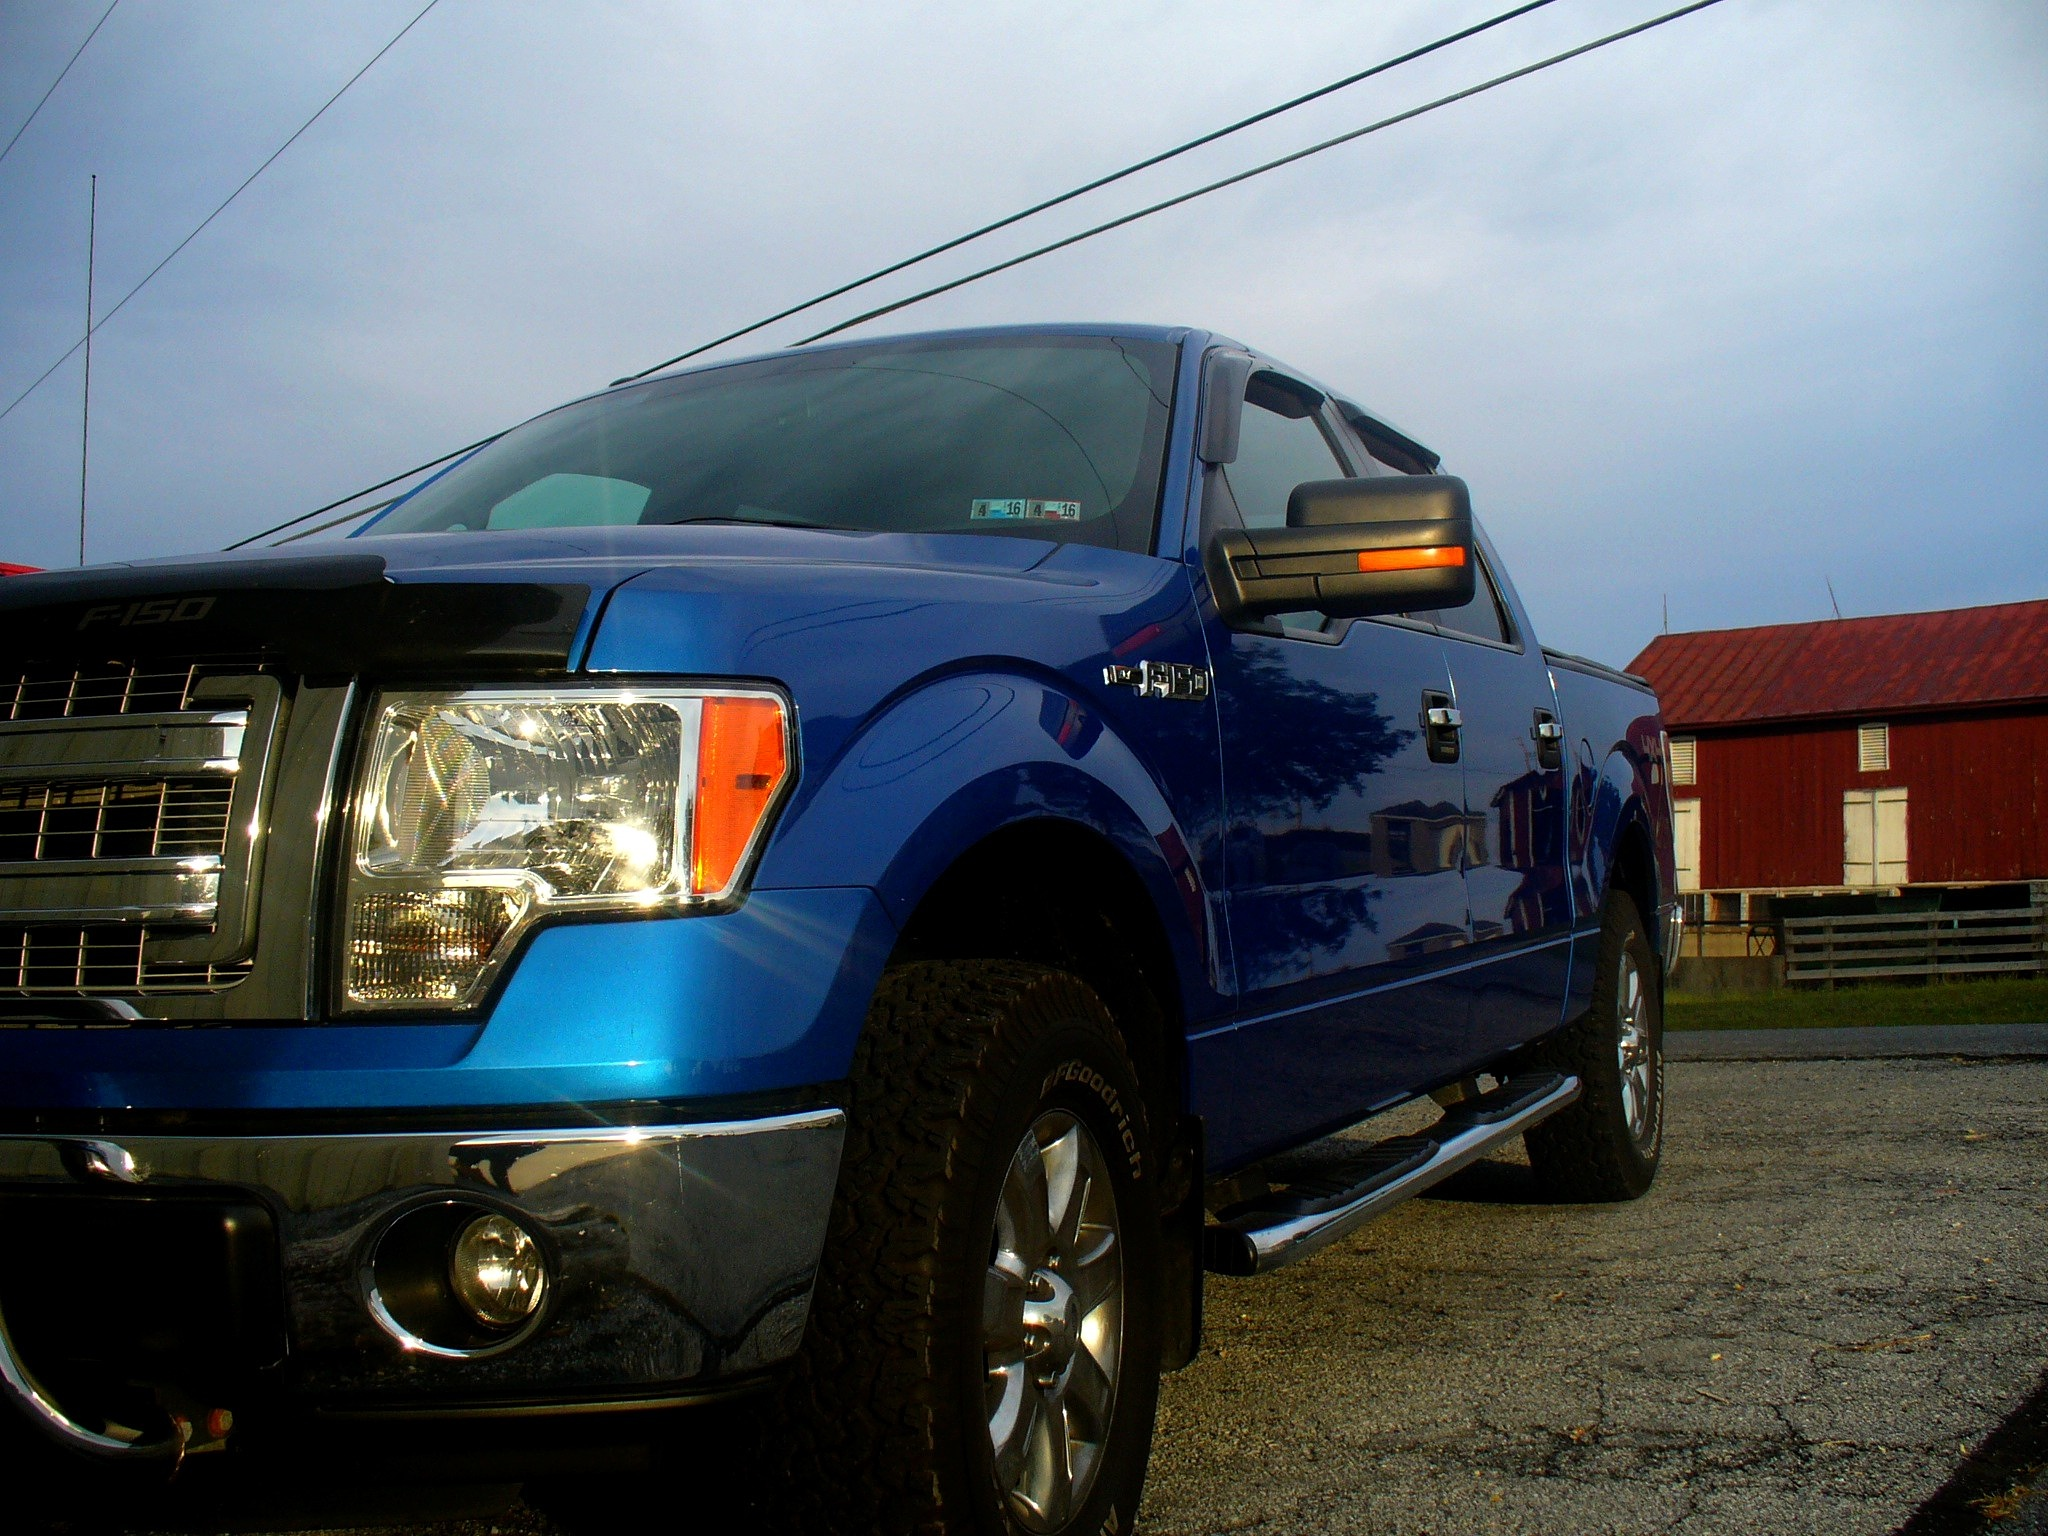 Ford F-150 by Brooke Pyles